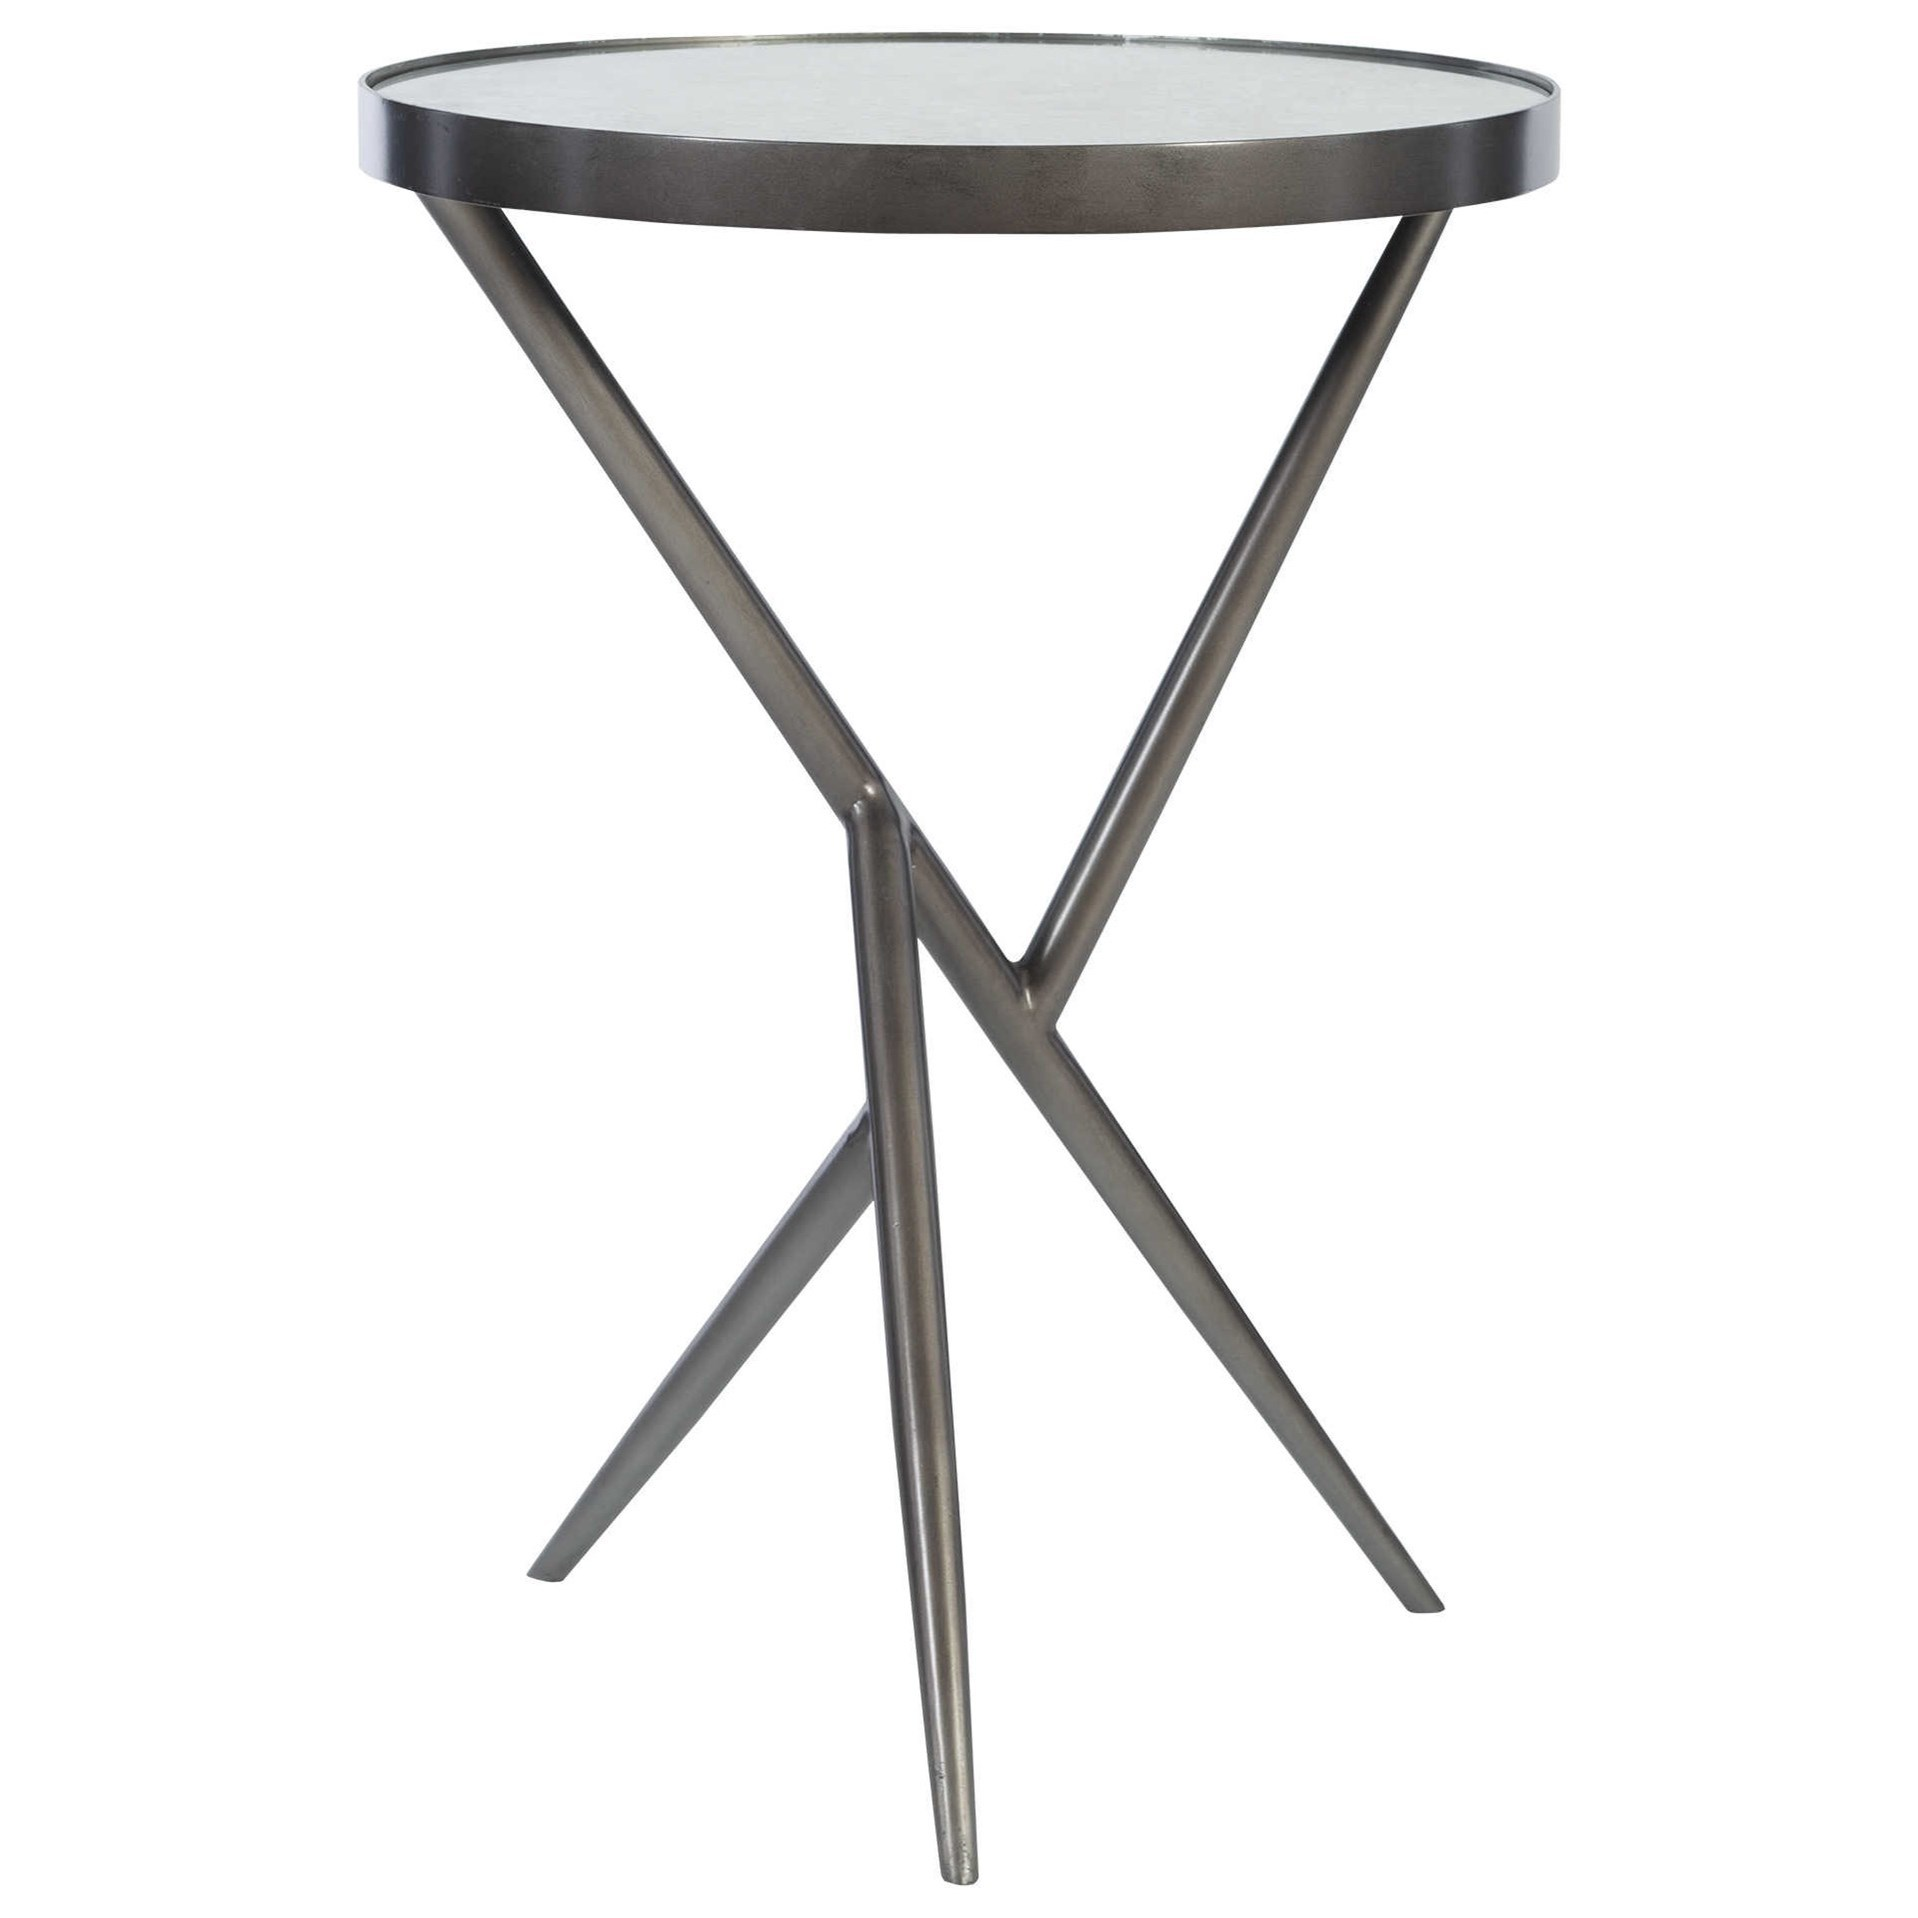 Accent Furniture - Occasional Tables Absalom Round Accent Table by Uttermost at Upper Room Home Furnishings